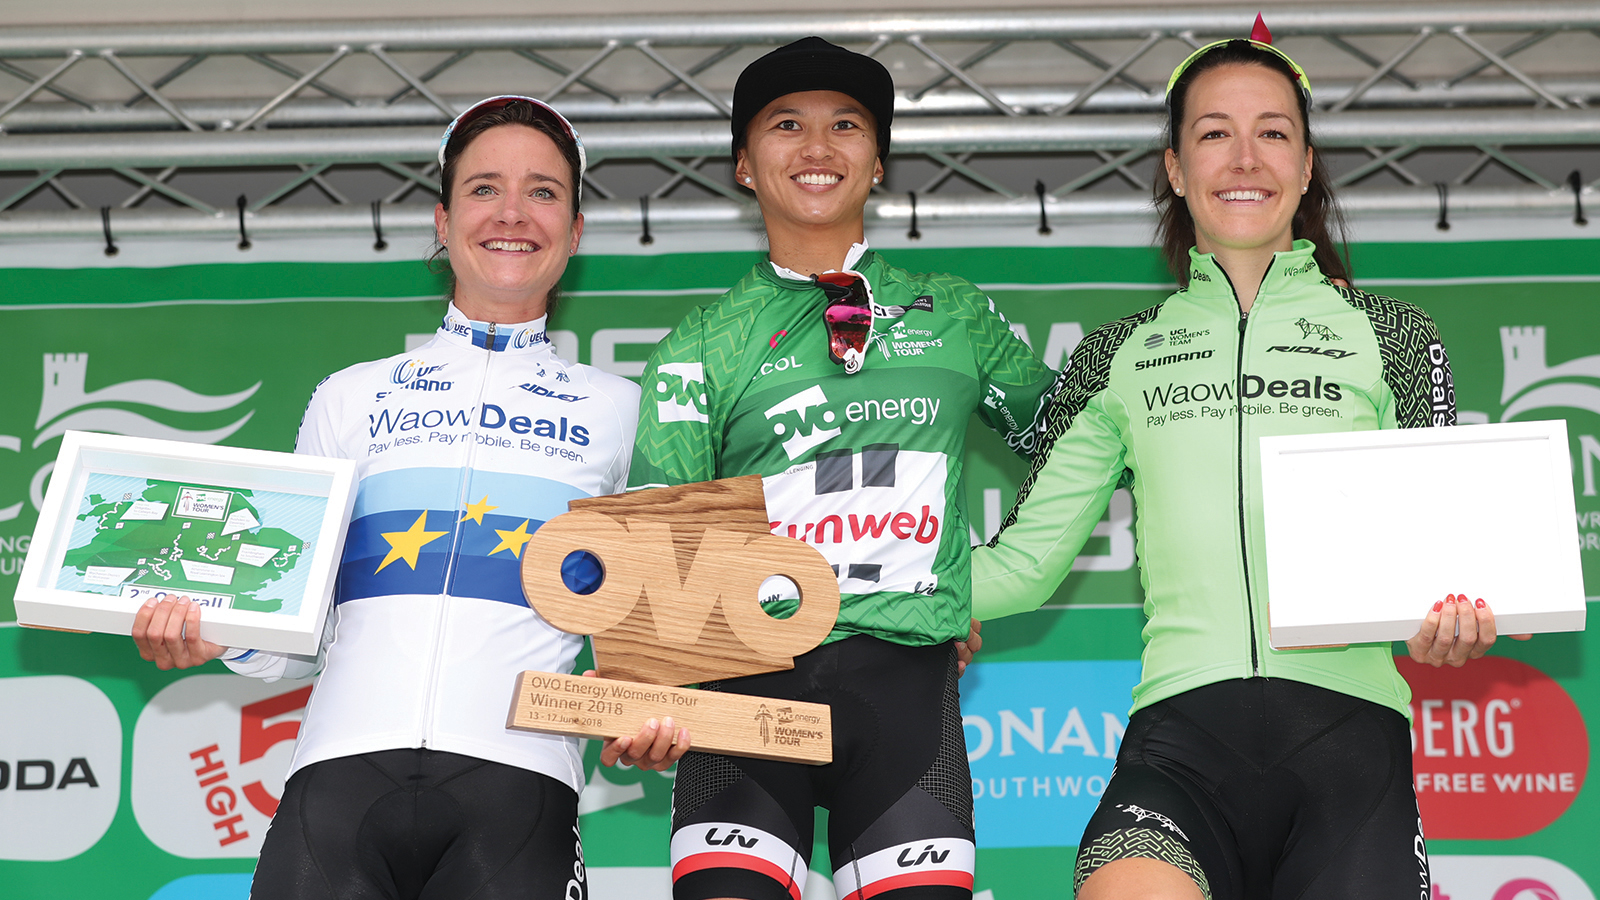 Women's Tour jerseys